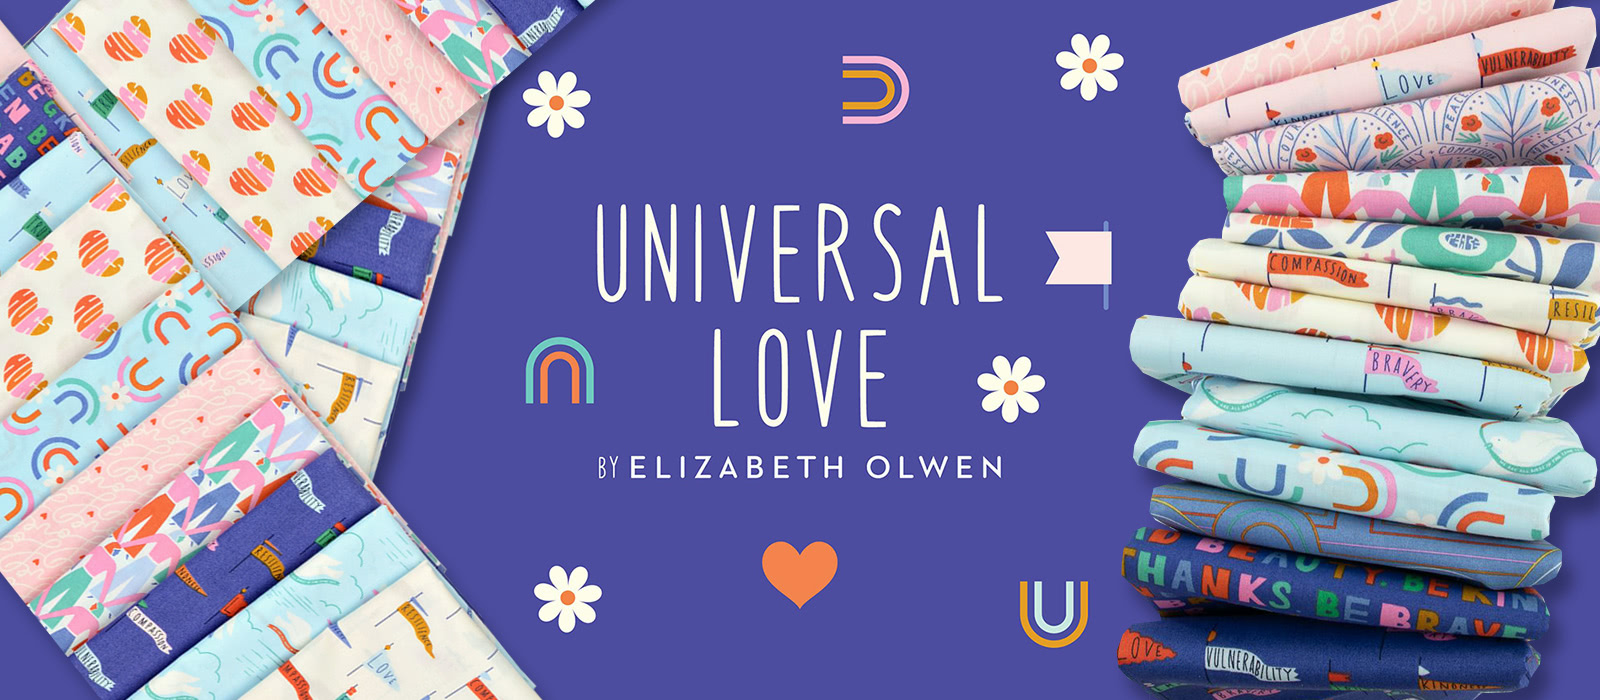 Cloud9 Fabrics Universal Universal Love Collection by Elizabeth Olwen